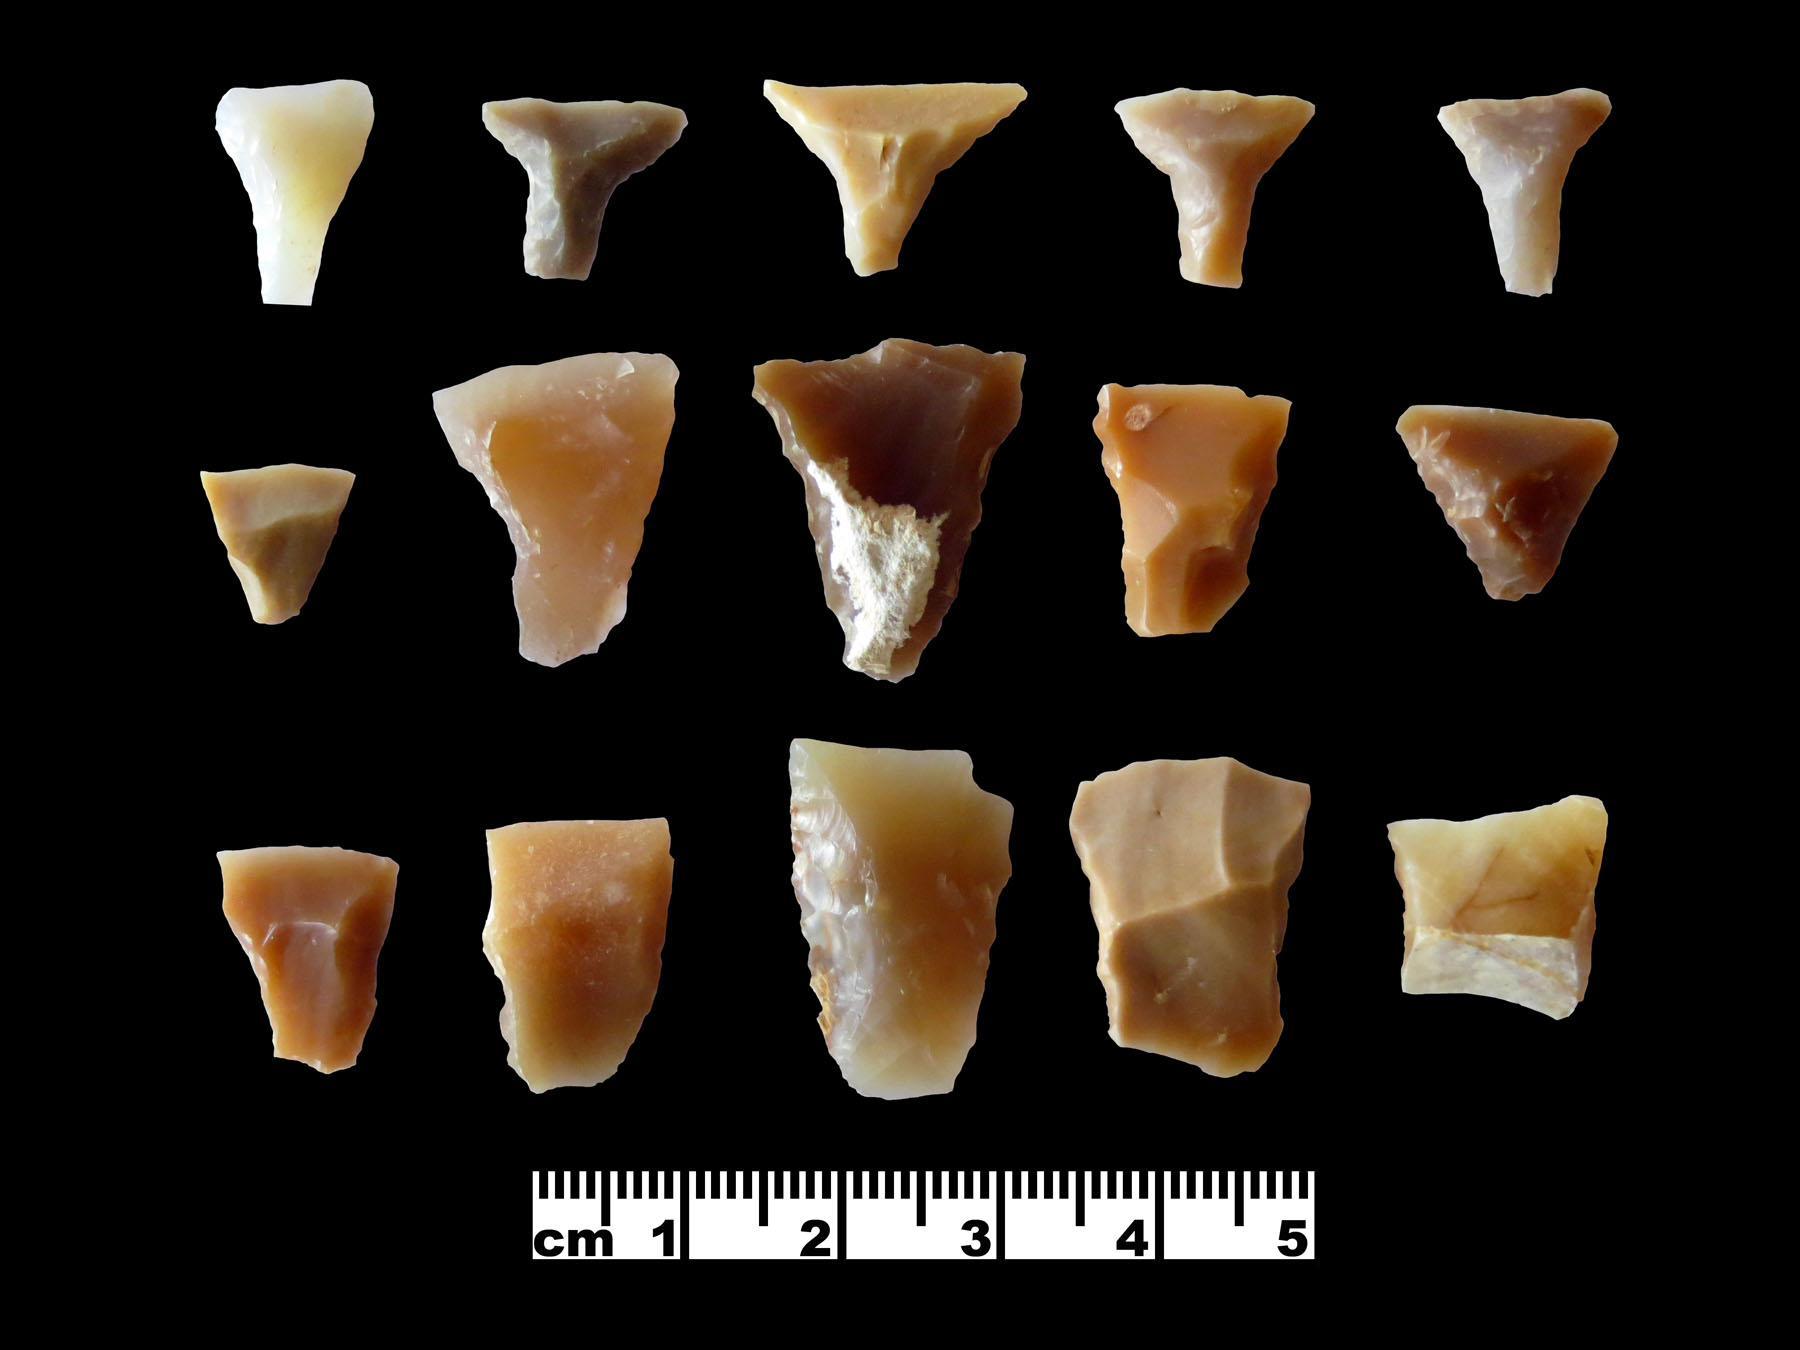 Fig. 2. Transverse arrowheads from Wisad Pools (courtesy Eastern Badia Archaeological Project).